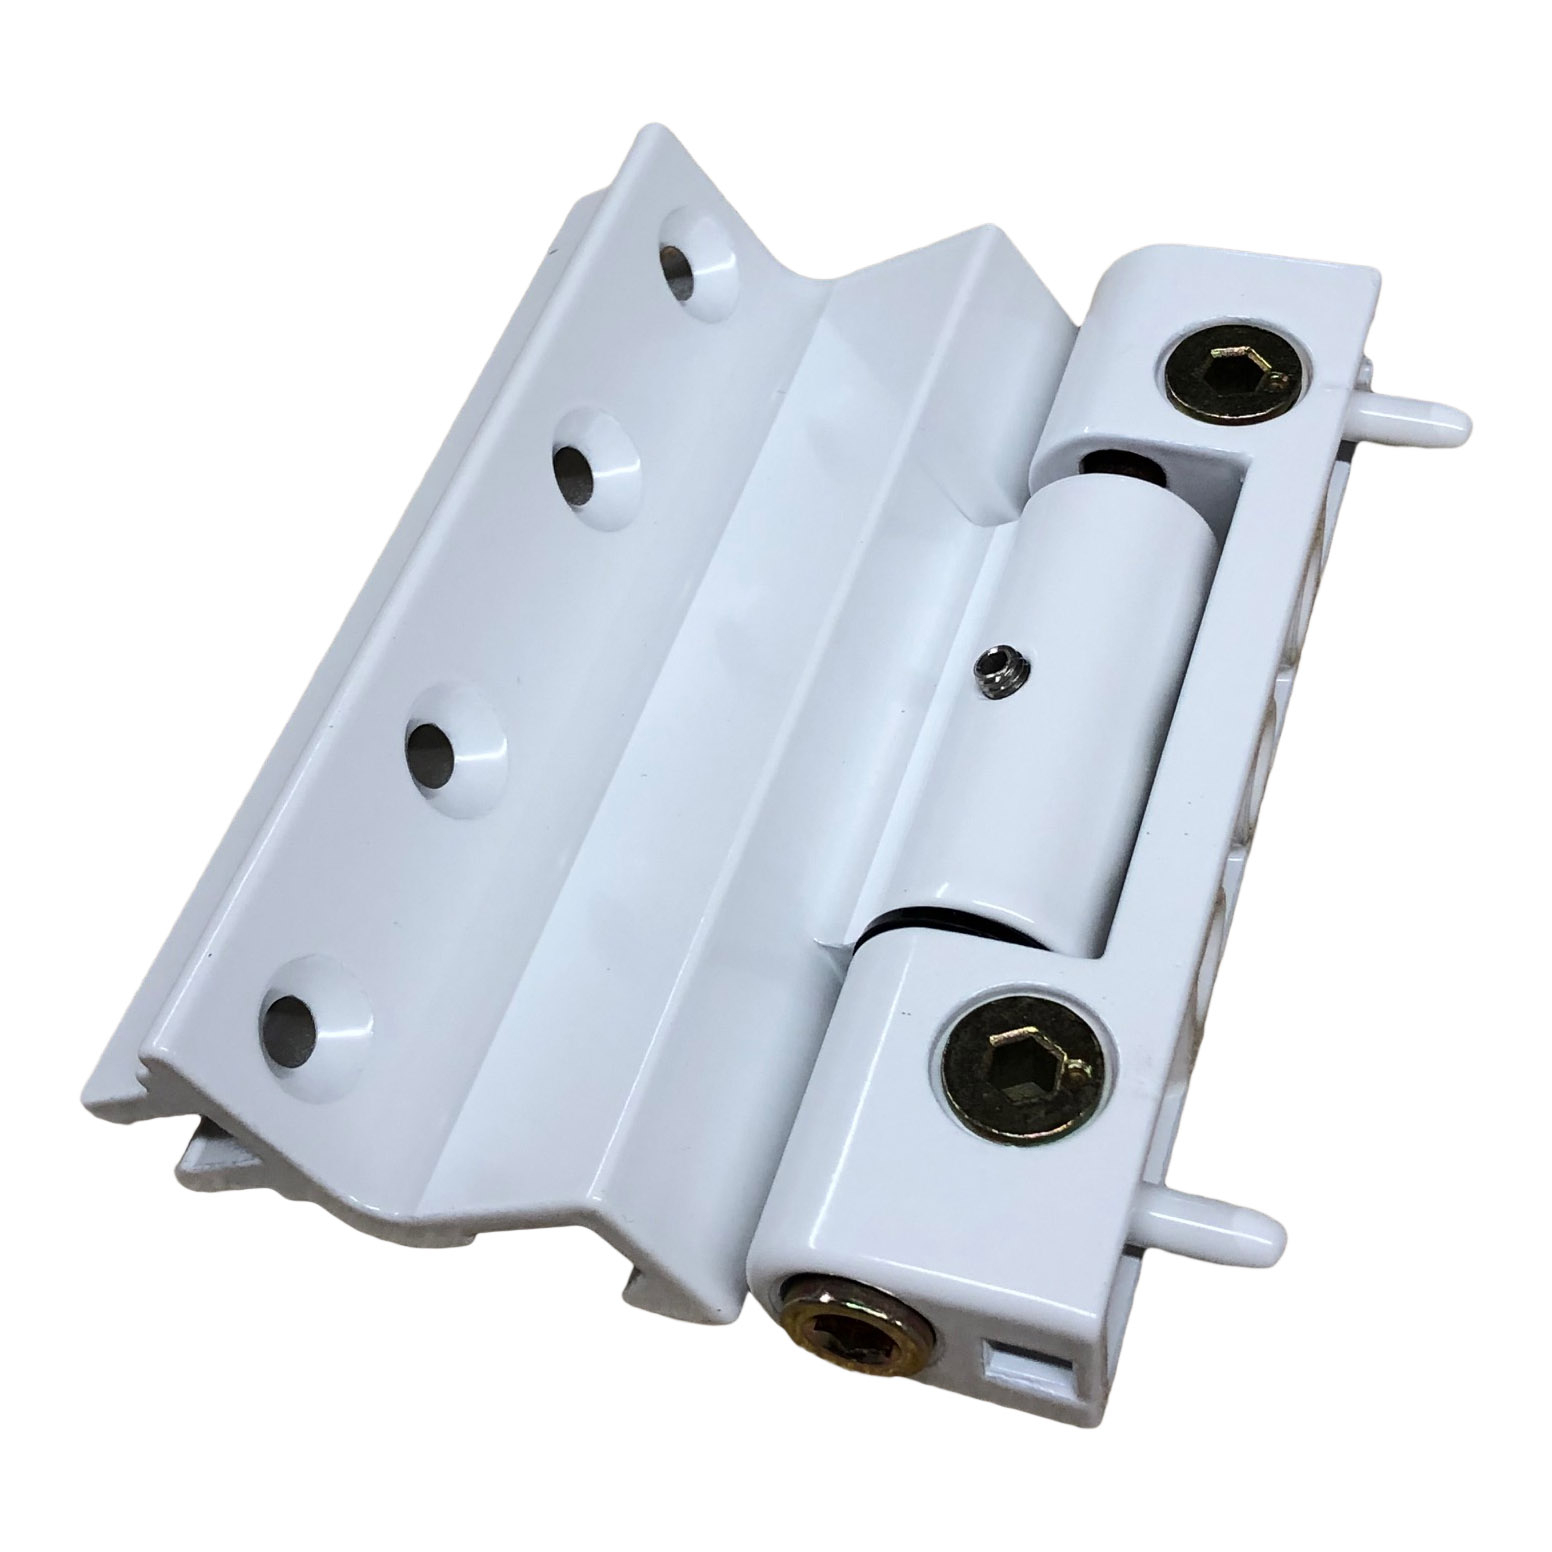 Stanway Rebated Butt Hinge White